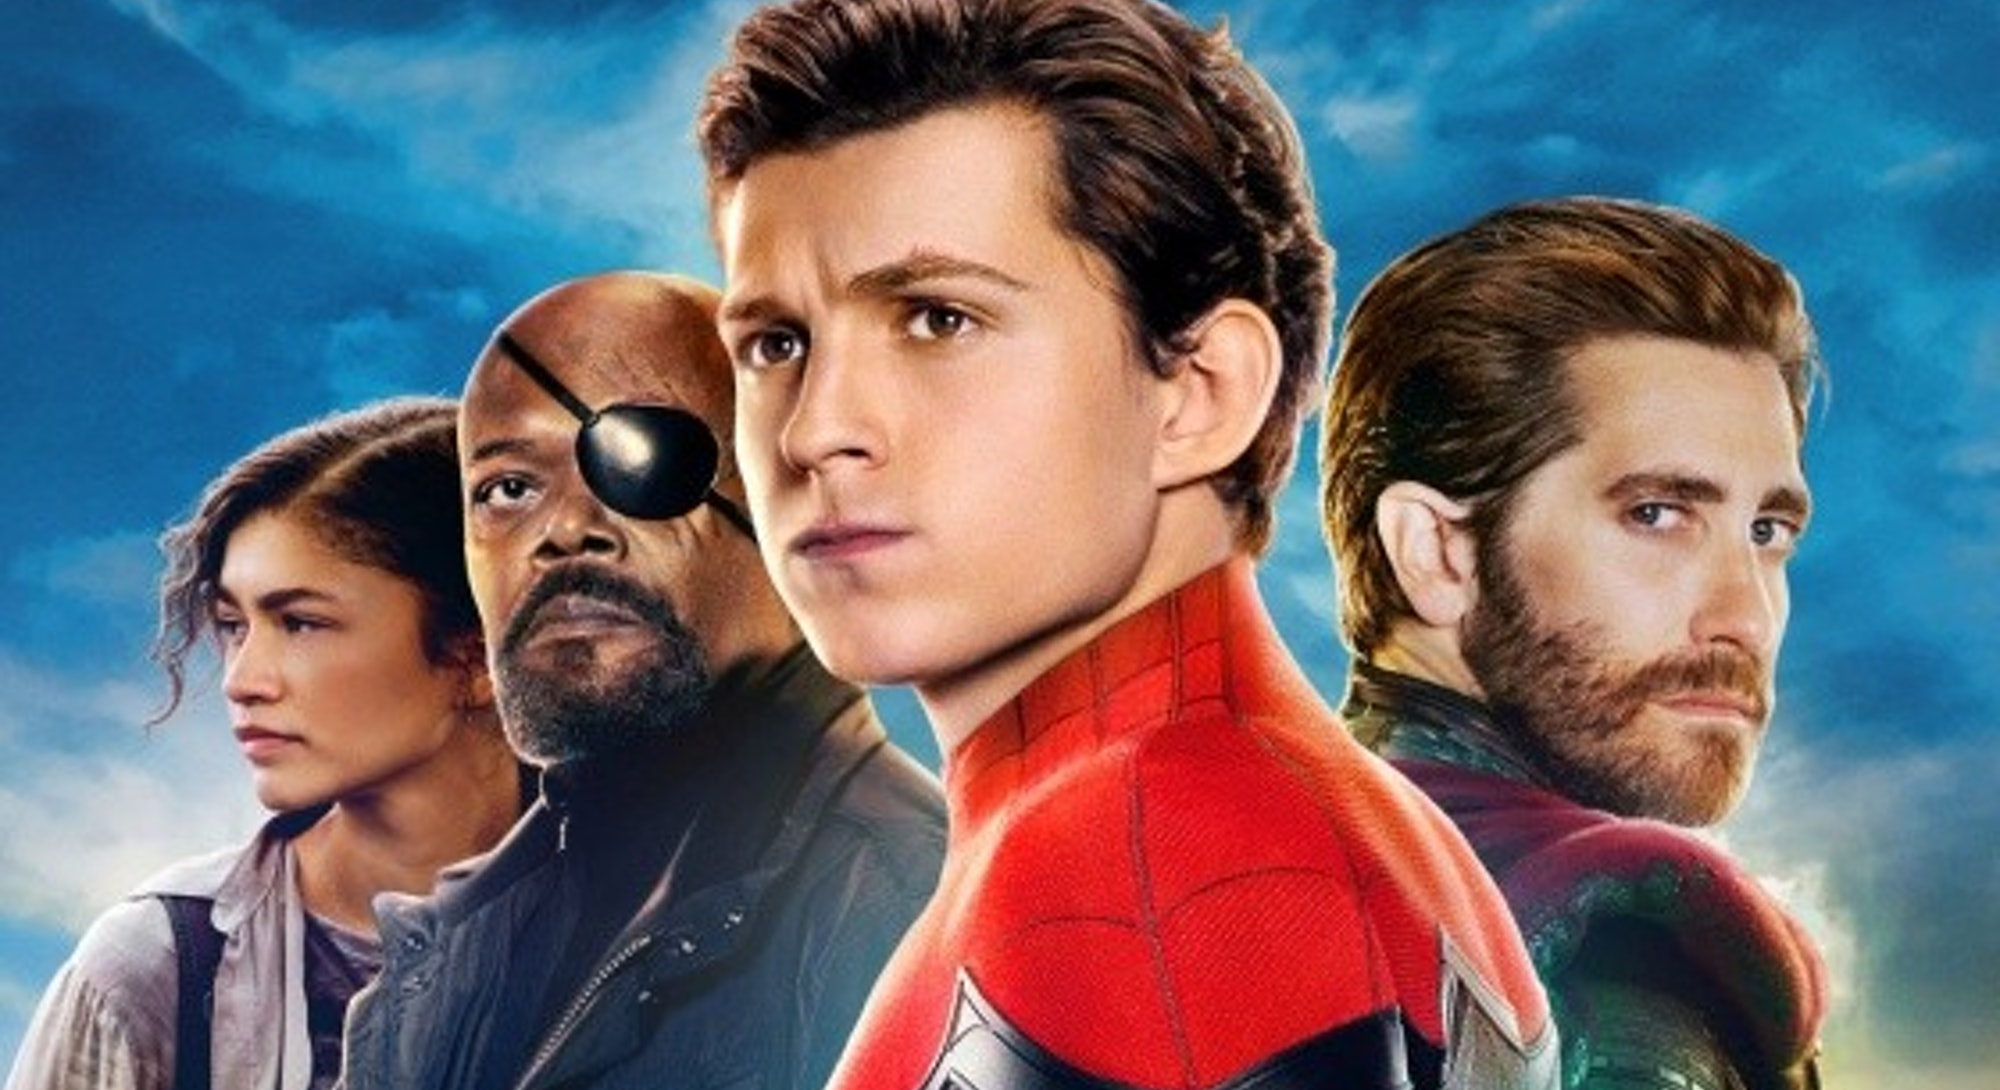 spider-man far from home cast lineup poster